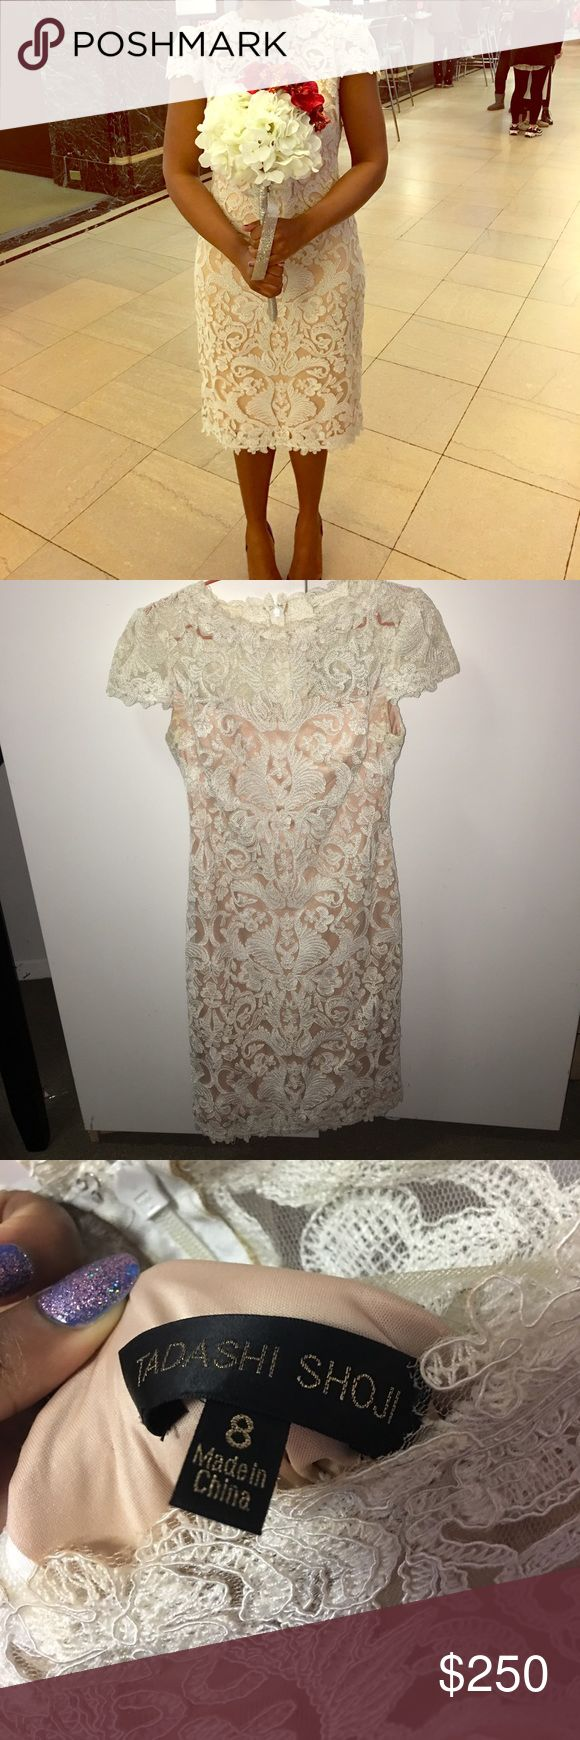 Tadashi Shoji Wedding Dress This was my wedding dress!! There are some stains and included pics of the lace at the bottom! You can take this dress to cleaners and fix it up! It's true size 8. Tadashi Shoji brand!! I don't discuss offers in the comment section, please use the offer button. No trades! Thanks so much!! Xo  I would love to sell this to beautiful bride to be! 🌹🌹💫💫💫🥂🎉🎉🎉🎉🎉🛍🛍🛍🛍🛍🛍🛍❤️❤️❤️❤️💙💜💙💜💙💜💙💜💙 Tadashi Shoji Dresses Wedding